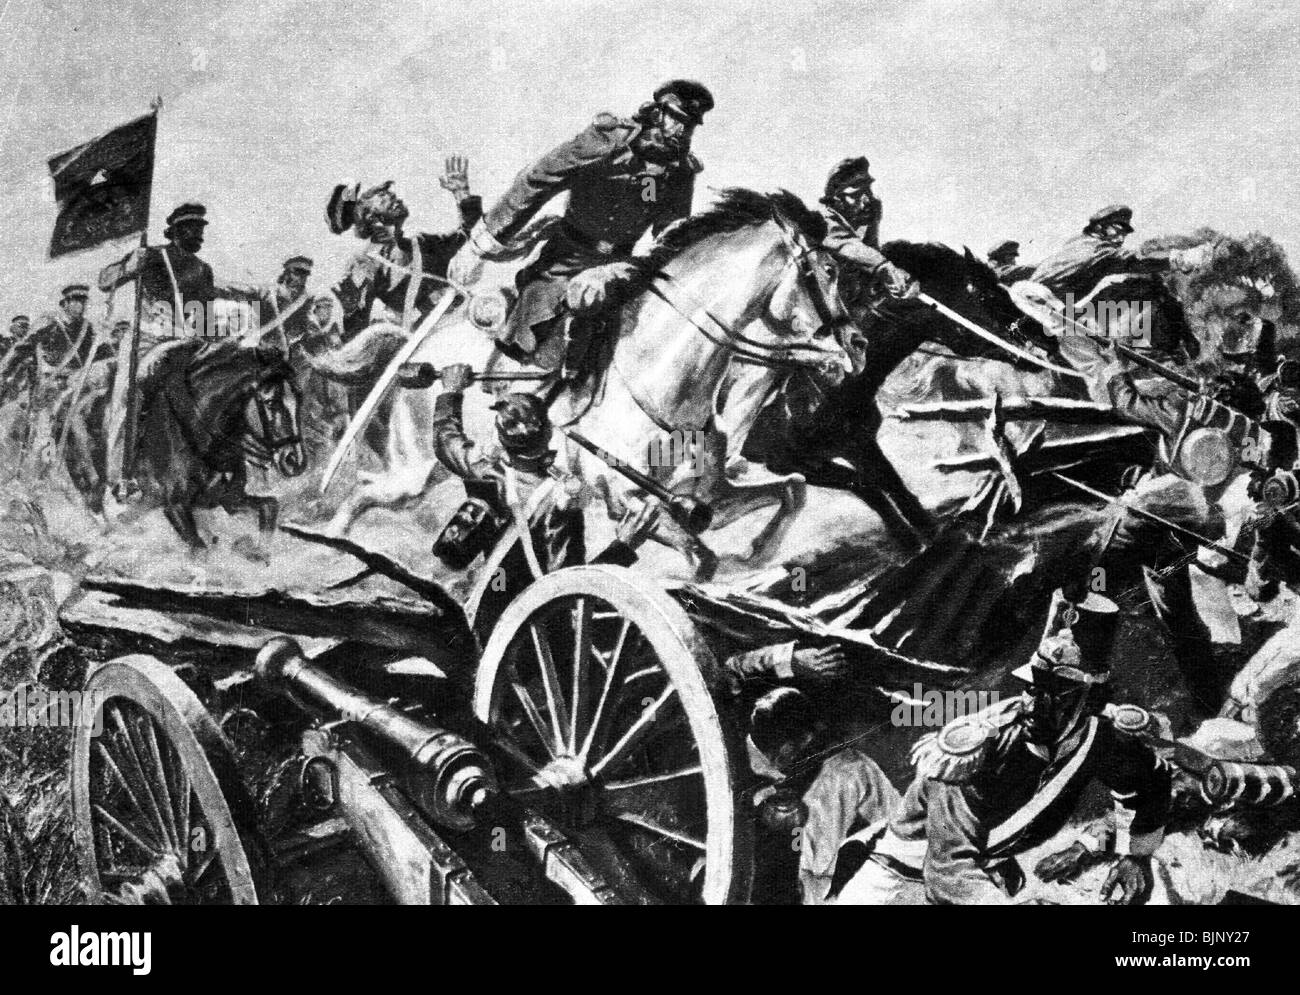 Mexican-American War 1845 - 1848, battle of Resaca de la Palma, 9.5.1846, attack of a squadron of the 2nd US Dragoons - Stock Image